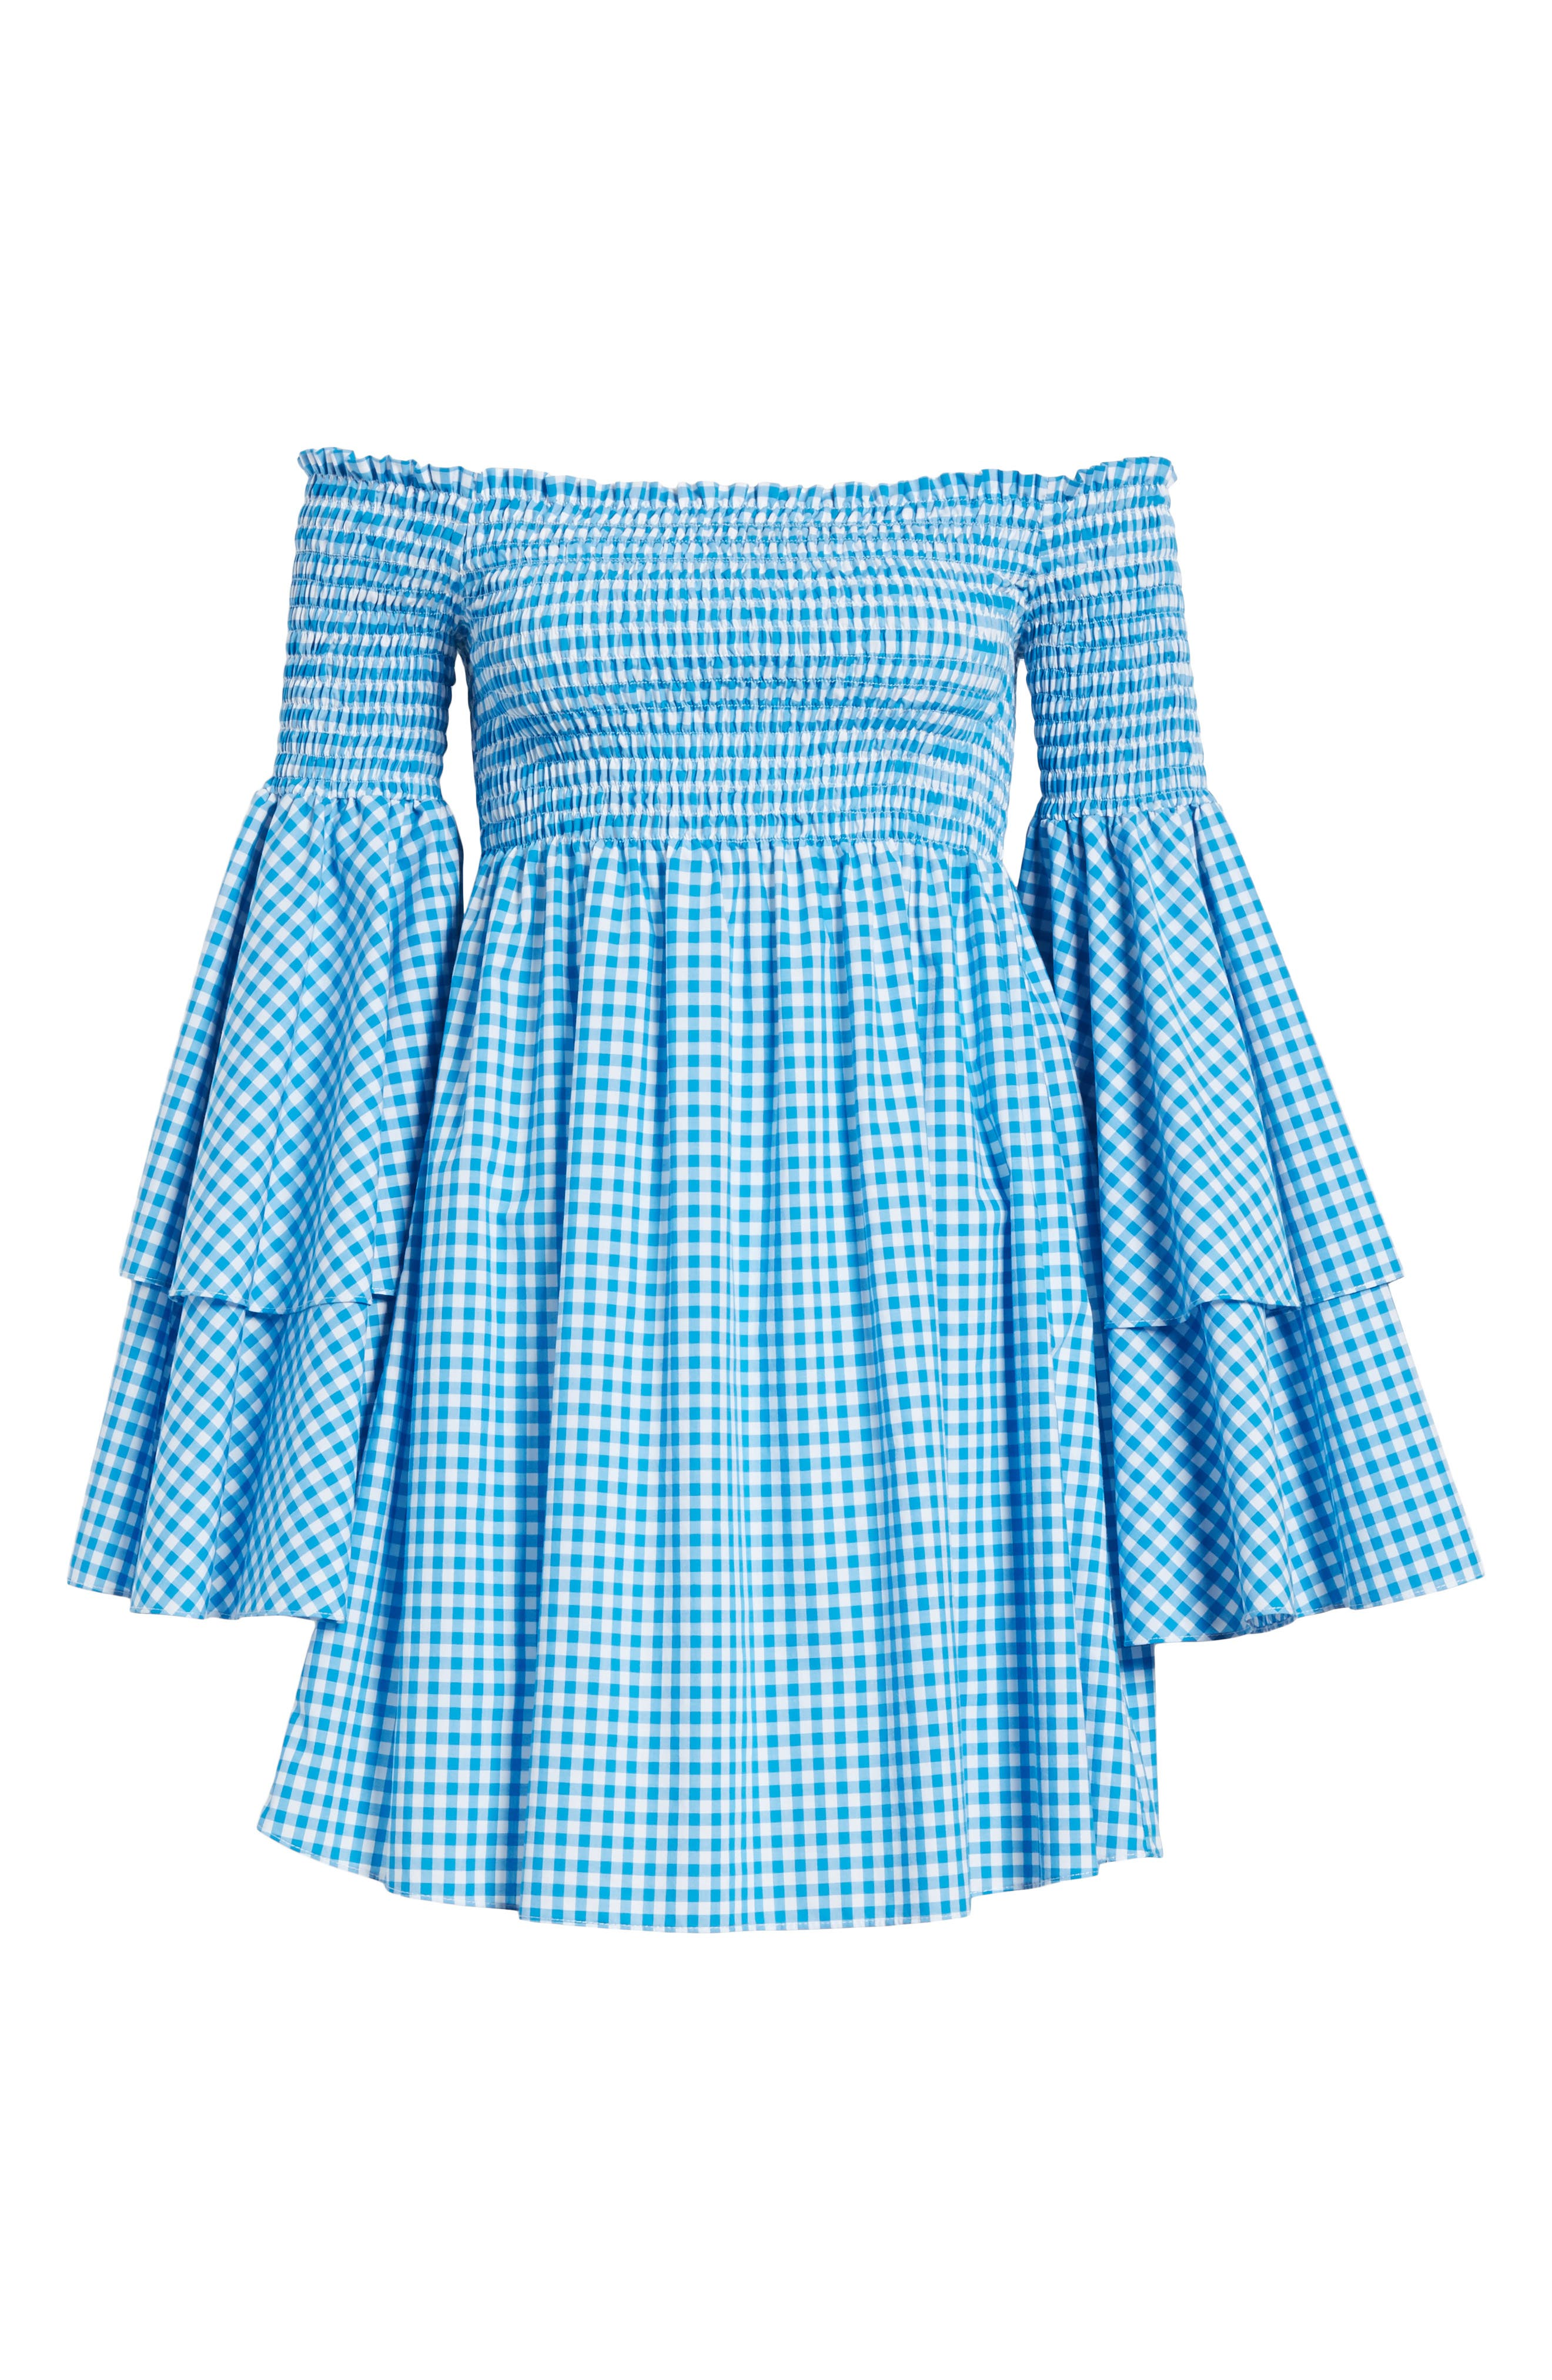 Appolonia Gingham Off the Shoulder Dress,                             Alternate thumbnail 6, color,                             Turquoise